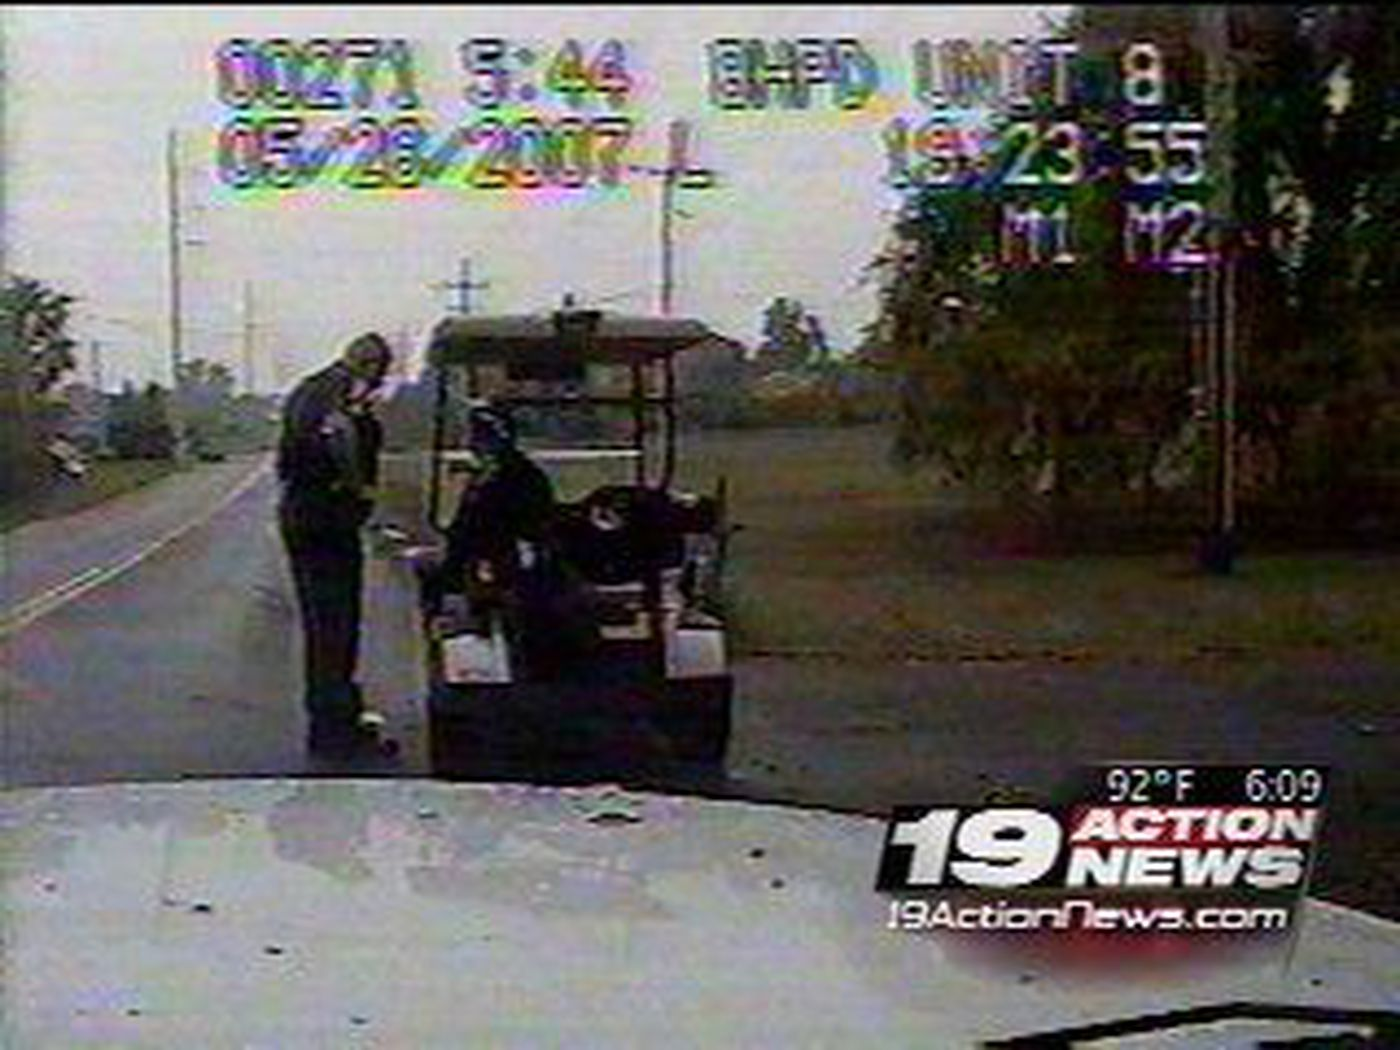 Repeat Drunk Driver Pleads Not Guilty to Golf Cart DUI on drunk driving animation, drunk driving arrest and jail, drunk driving statistics, drunk driving simulator, drunk golf cart accident, drunk driving signs, drunk guy in golf cart, drunk driving victims, guy yelling on a golf cart, drunk driving clip art, drunk mini golf, drunk driving deaths,